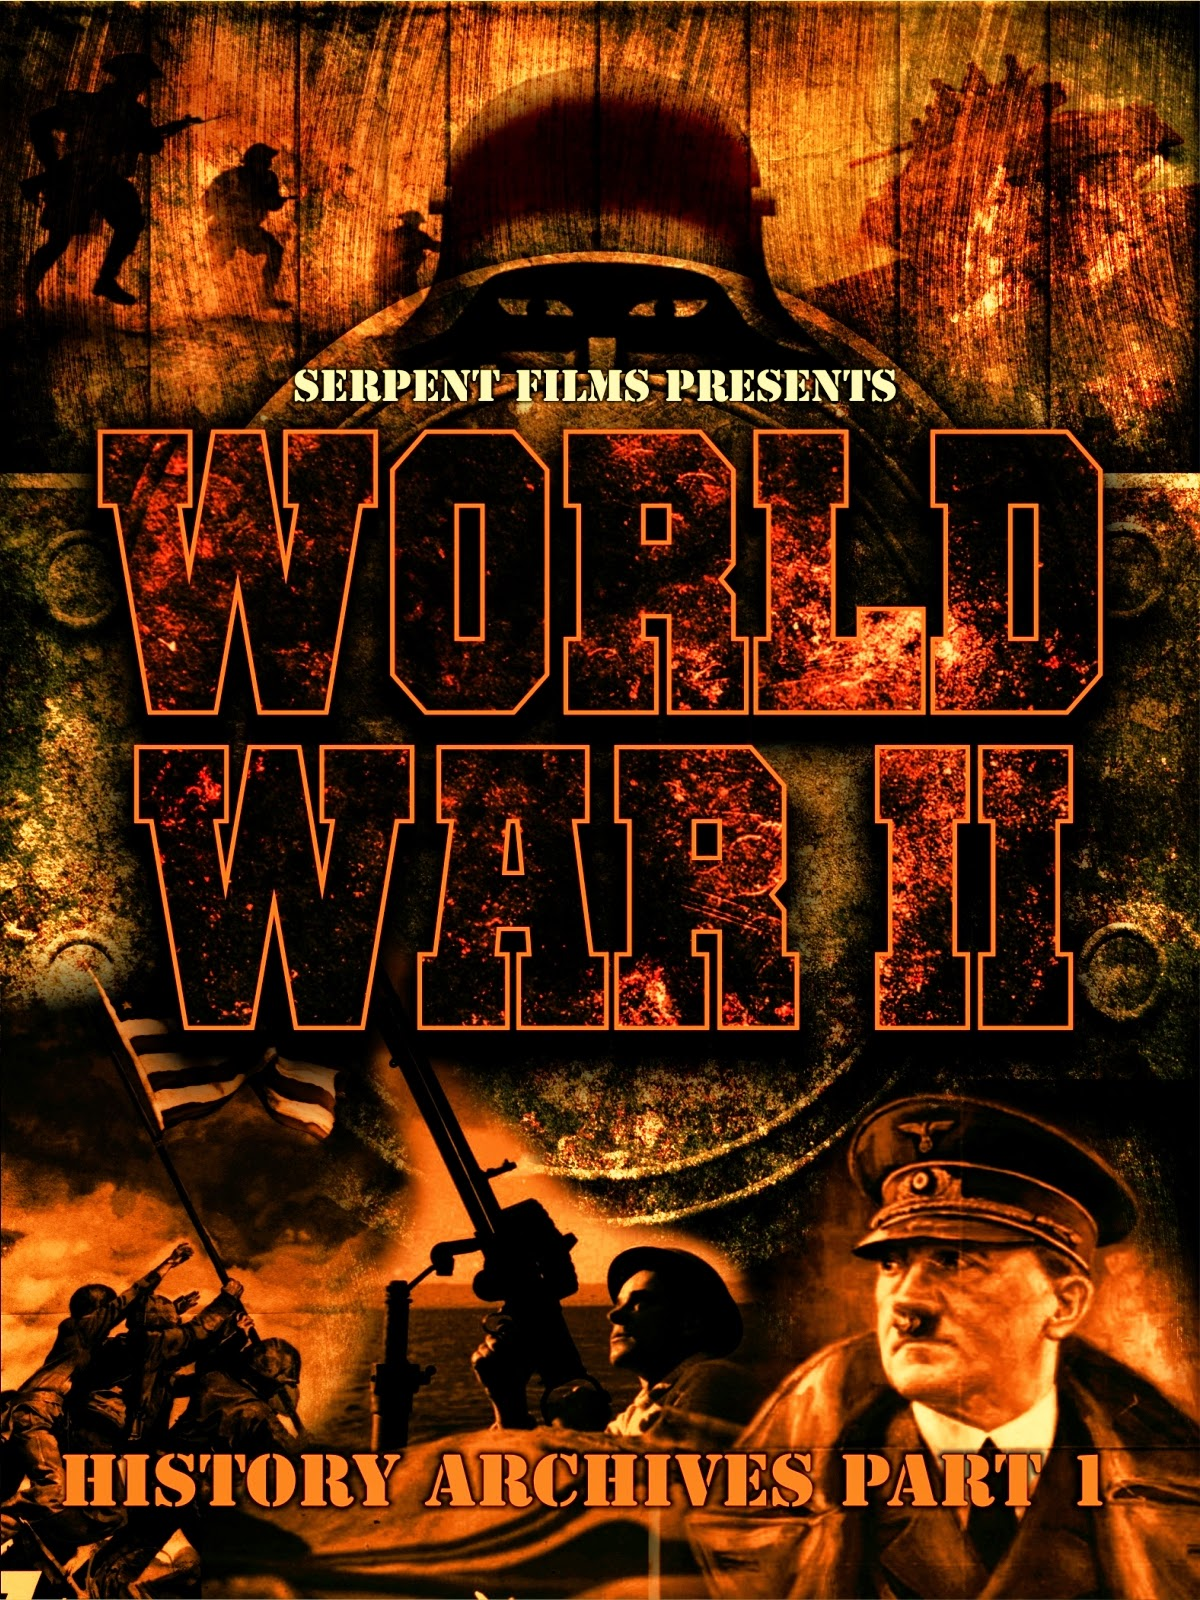 http://serpentfilms.blogspot.co.uk/p/world-war-ii-history-archives.html